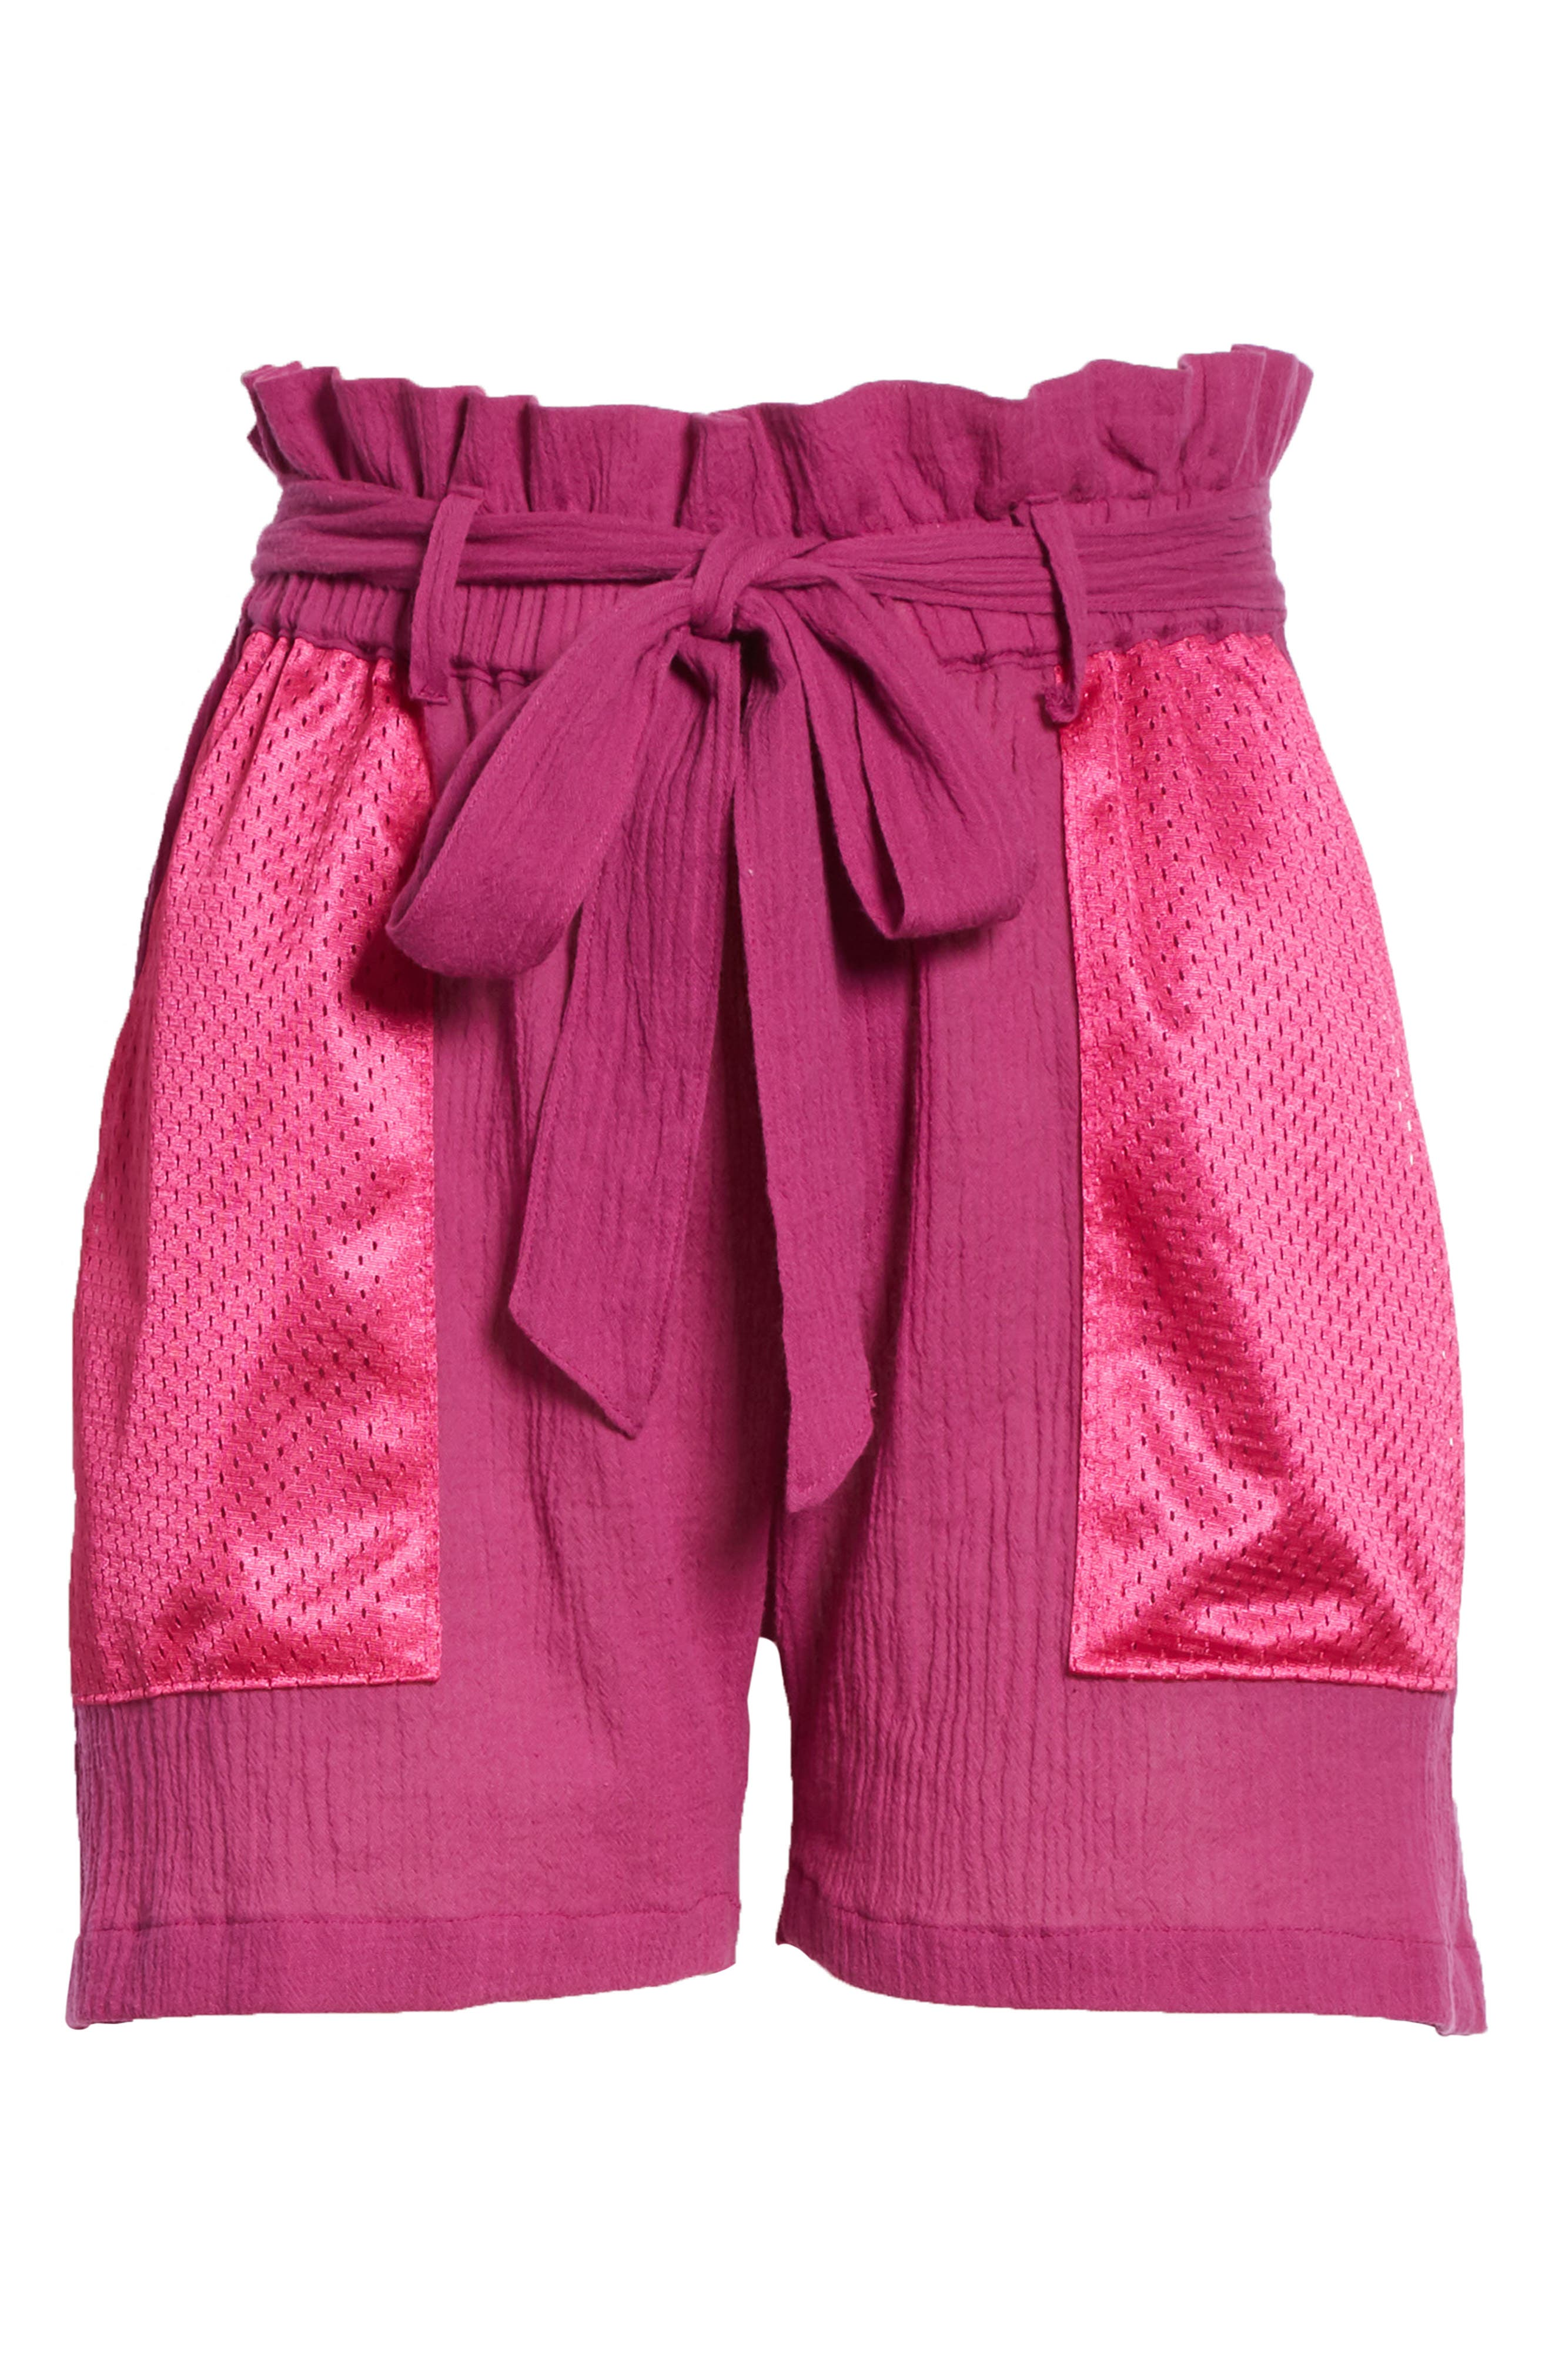 Island Mesh Pocket Shorts,                             Alternate thumbnail 6, color,                             MAGENTA